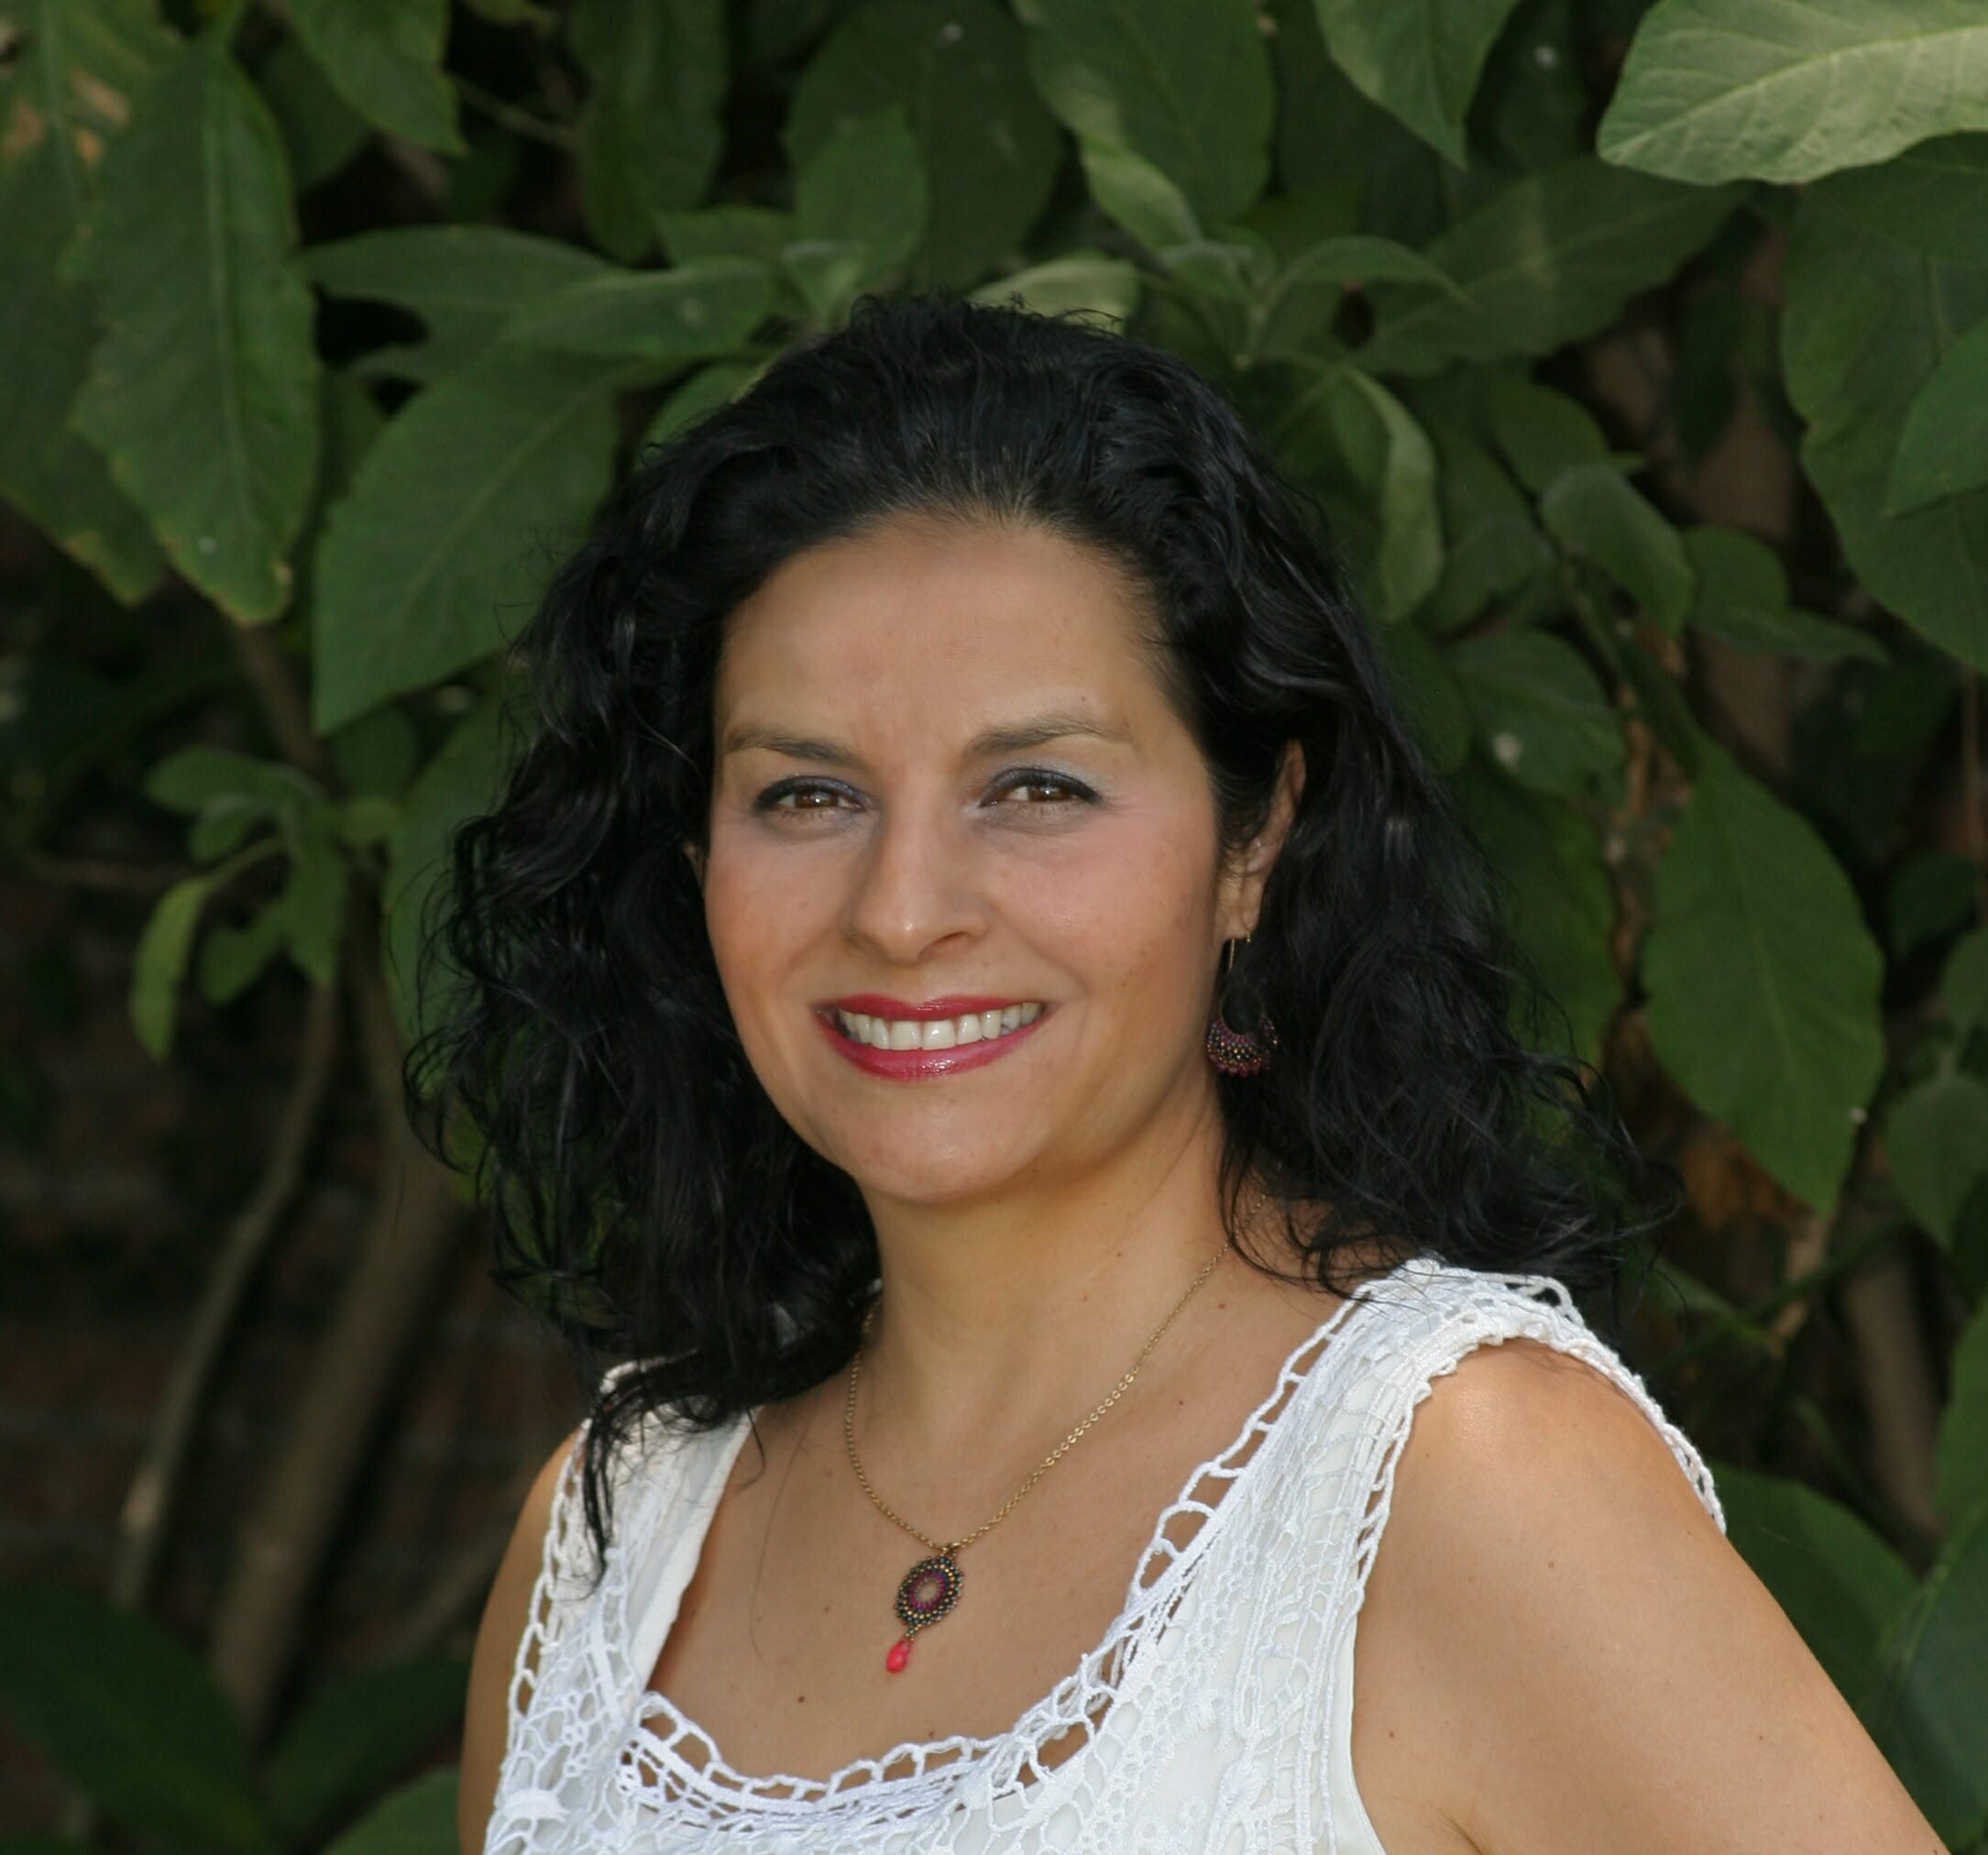 Martha Esther Sánchez Aguilar